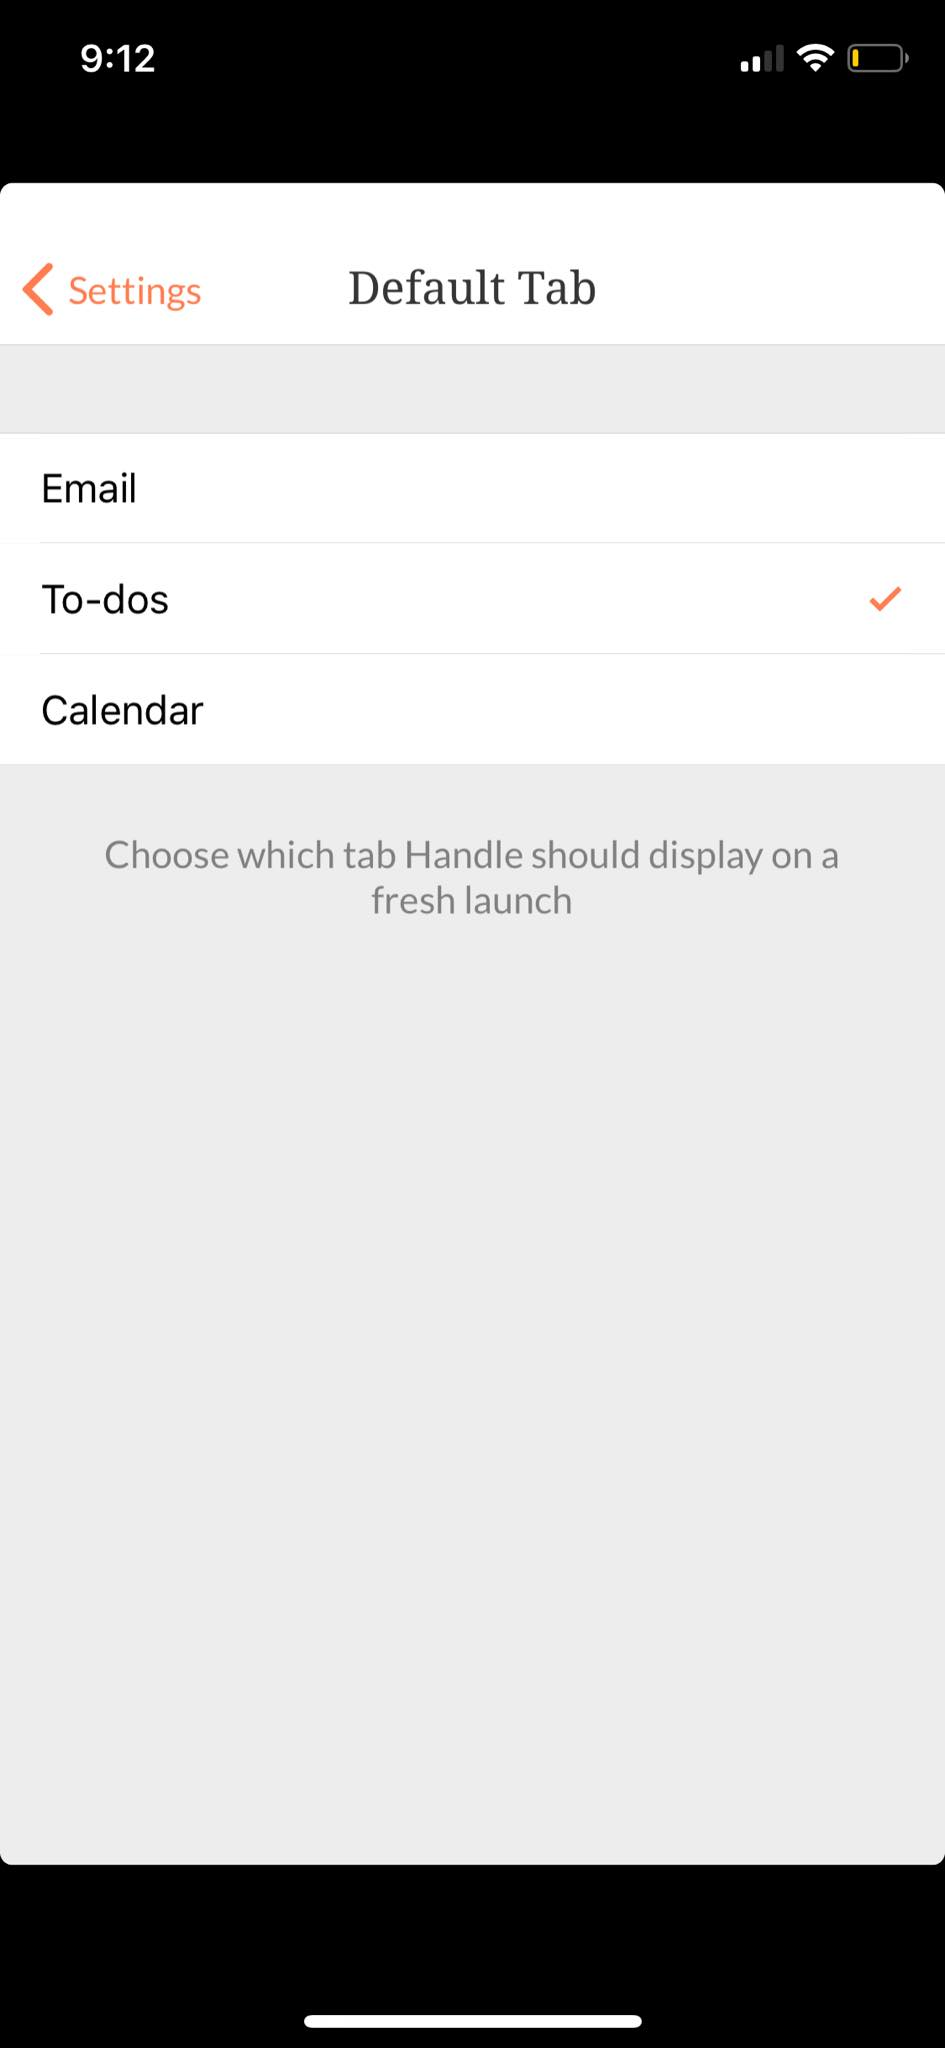 Default Tab on iOS by Handle